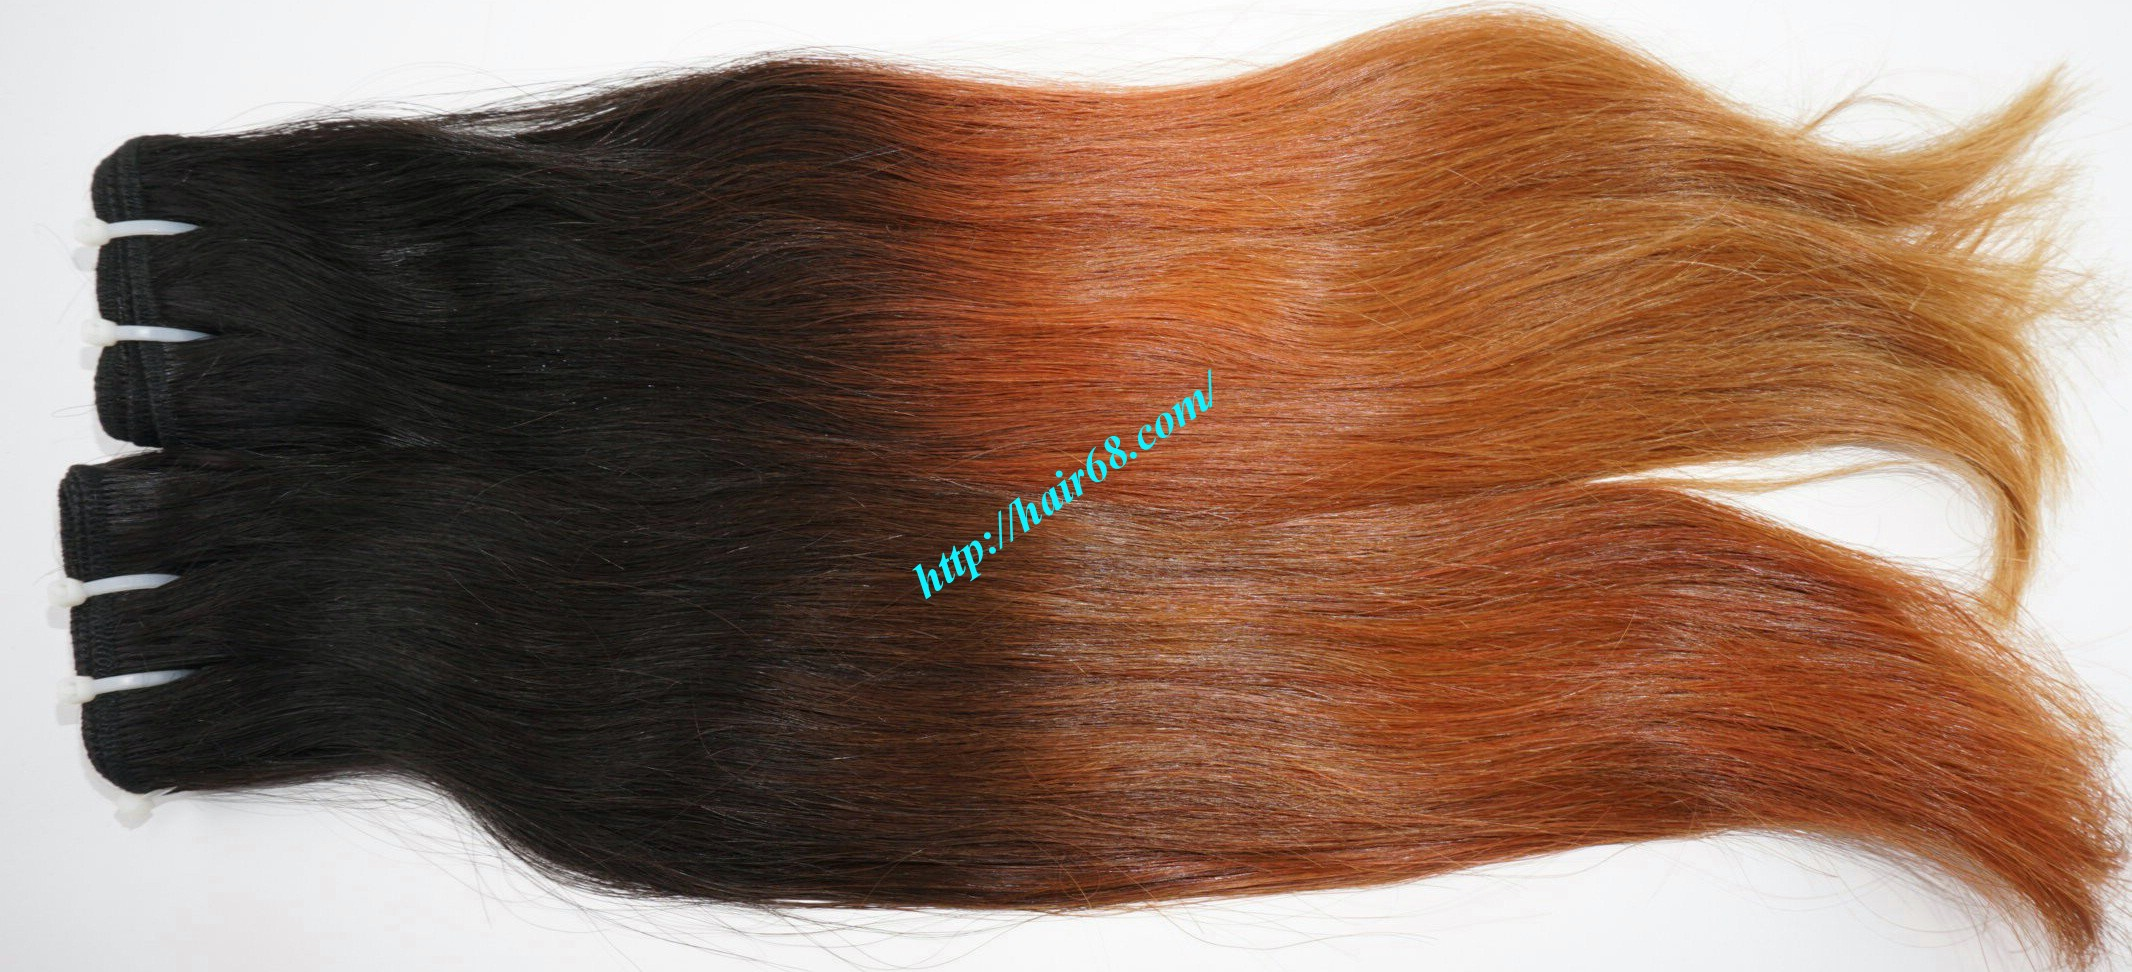 10 inch ombre remy hair extensions 6